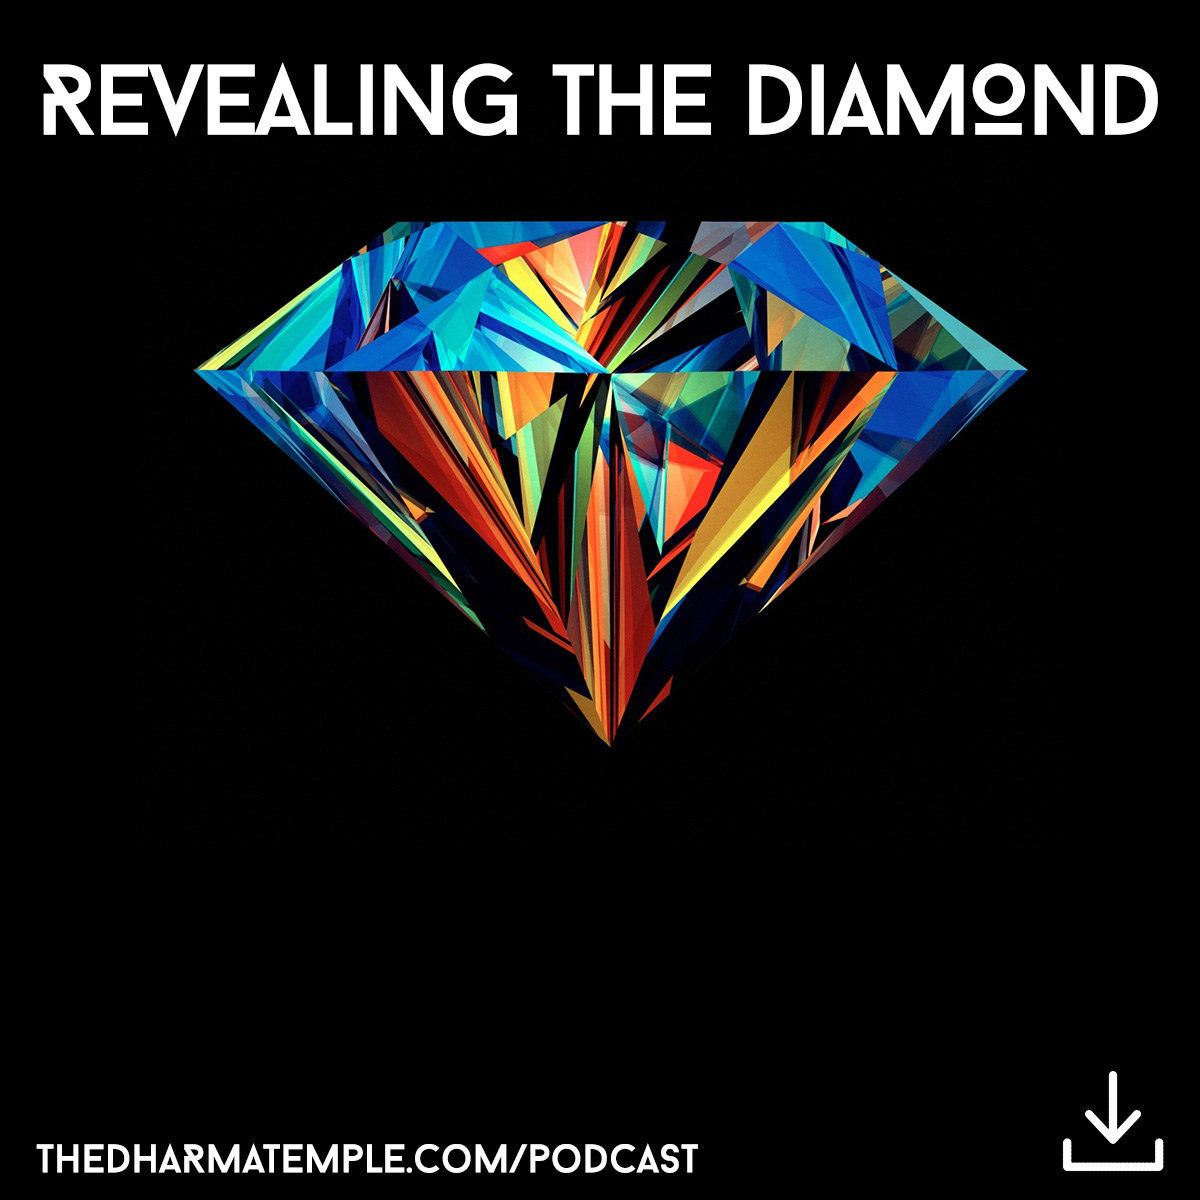 REVEALING THE DIAMOND